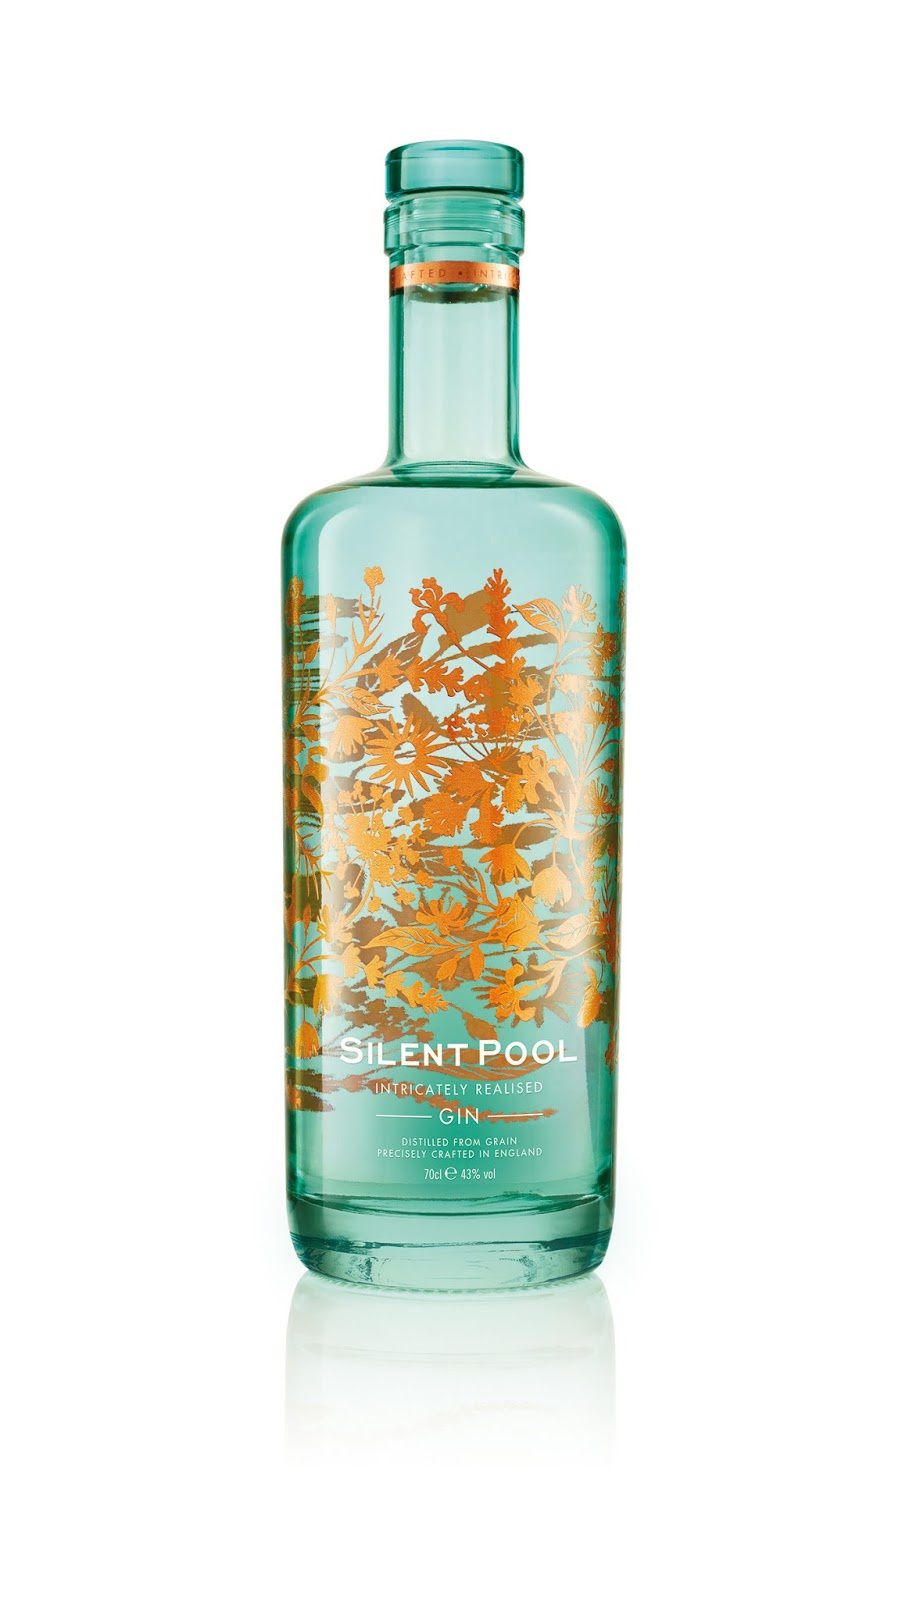 Silent Pool Distillers (gin) | Design : Seymourpowell, Londres, Royaume-Uni (avril 2016)